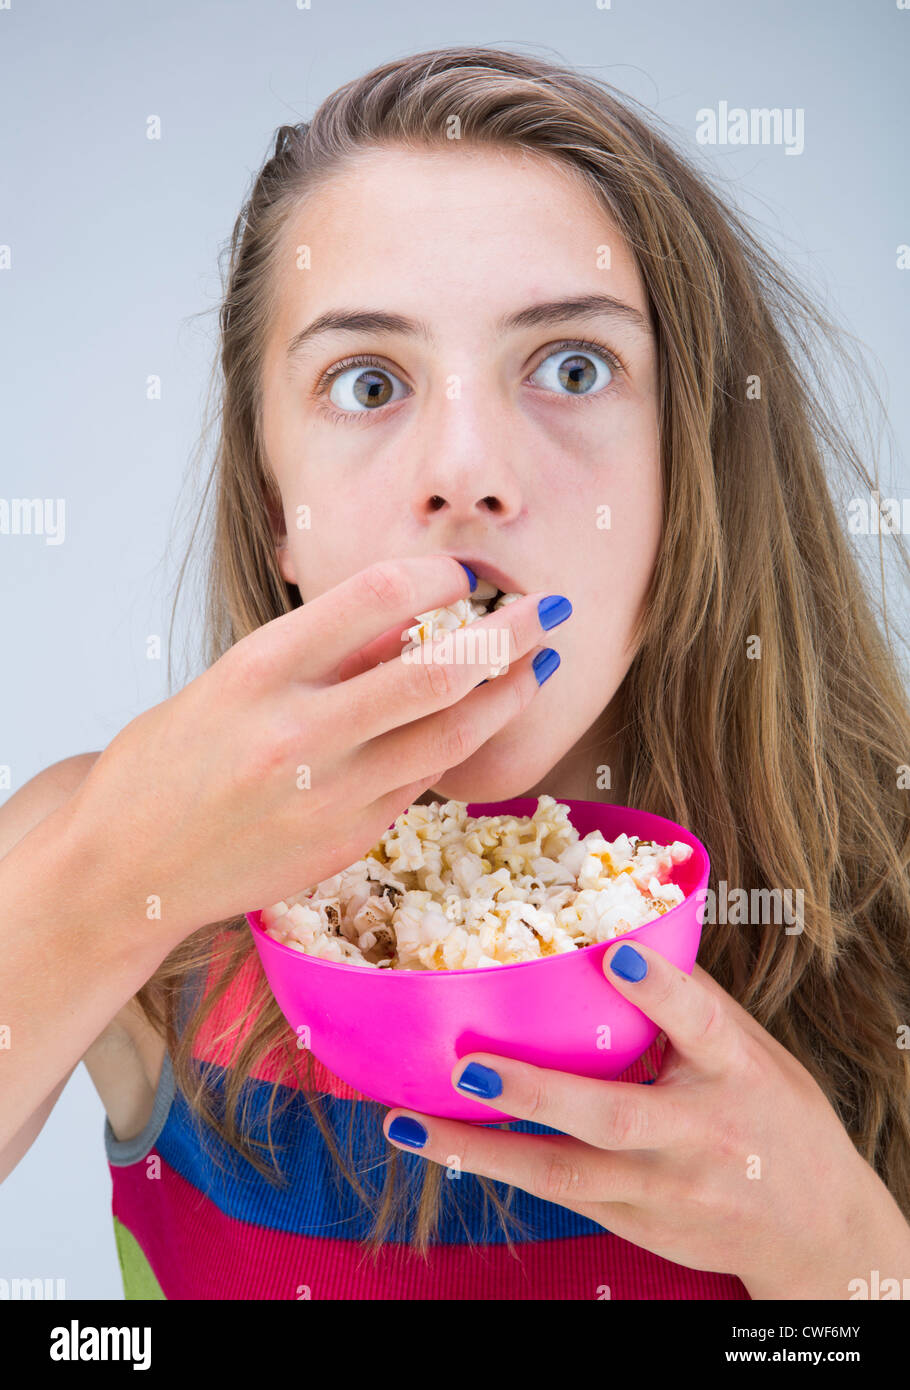 snack stock arab watches popcorn eating middle a wearing while of d movie illustration glasses render